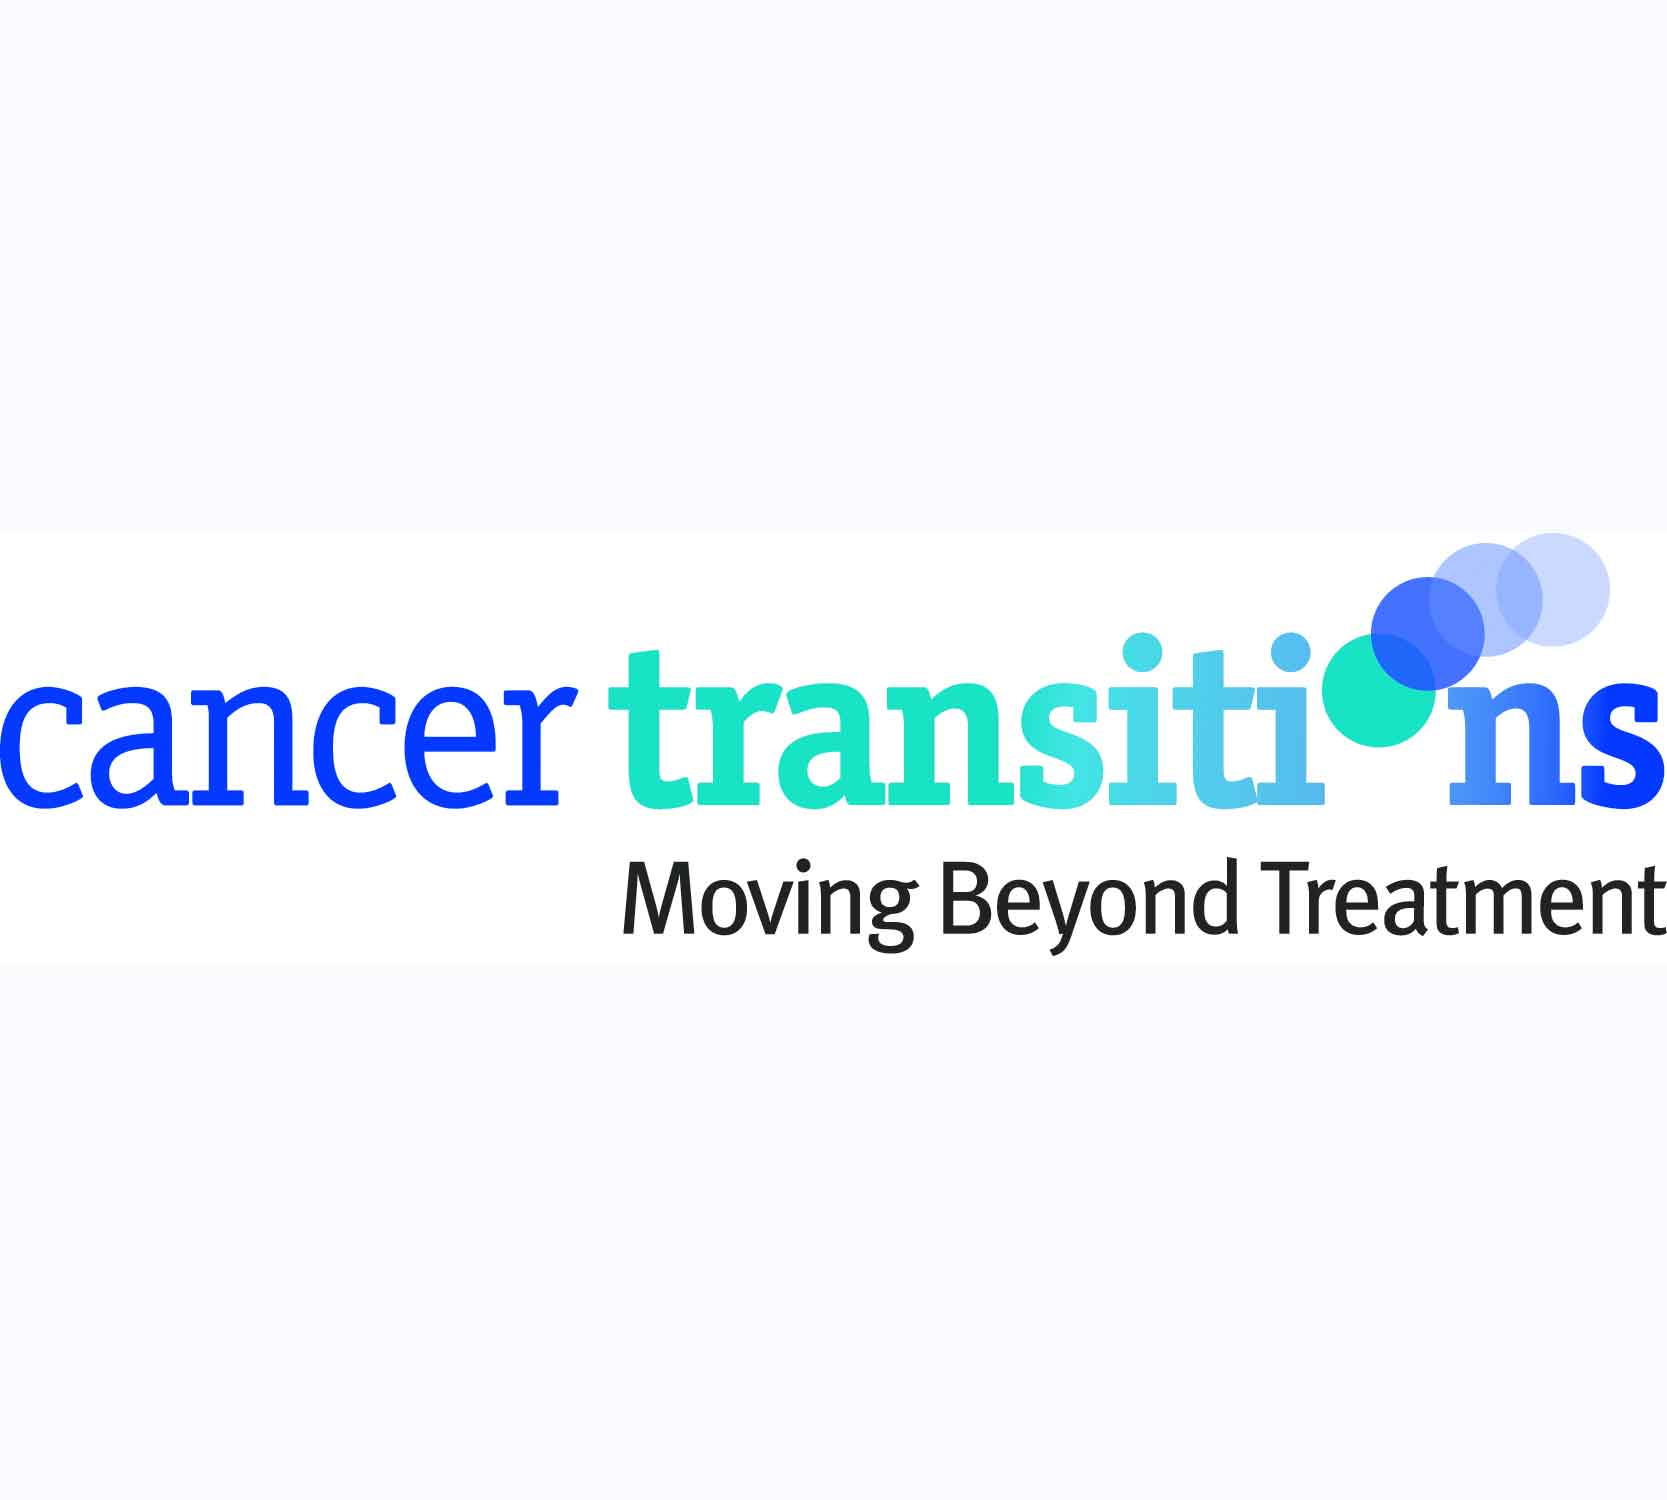 cancer transitions moving beyond treatment sept 29